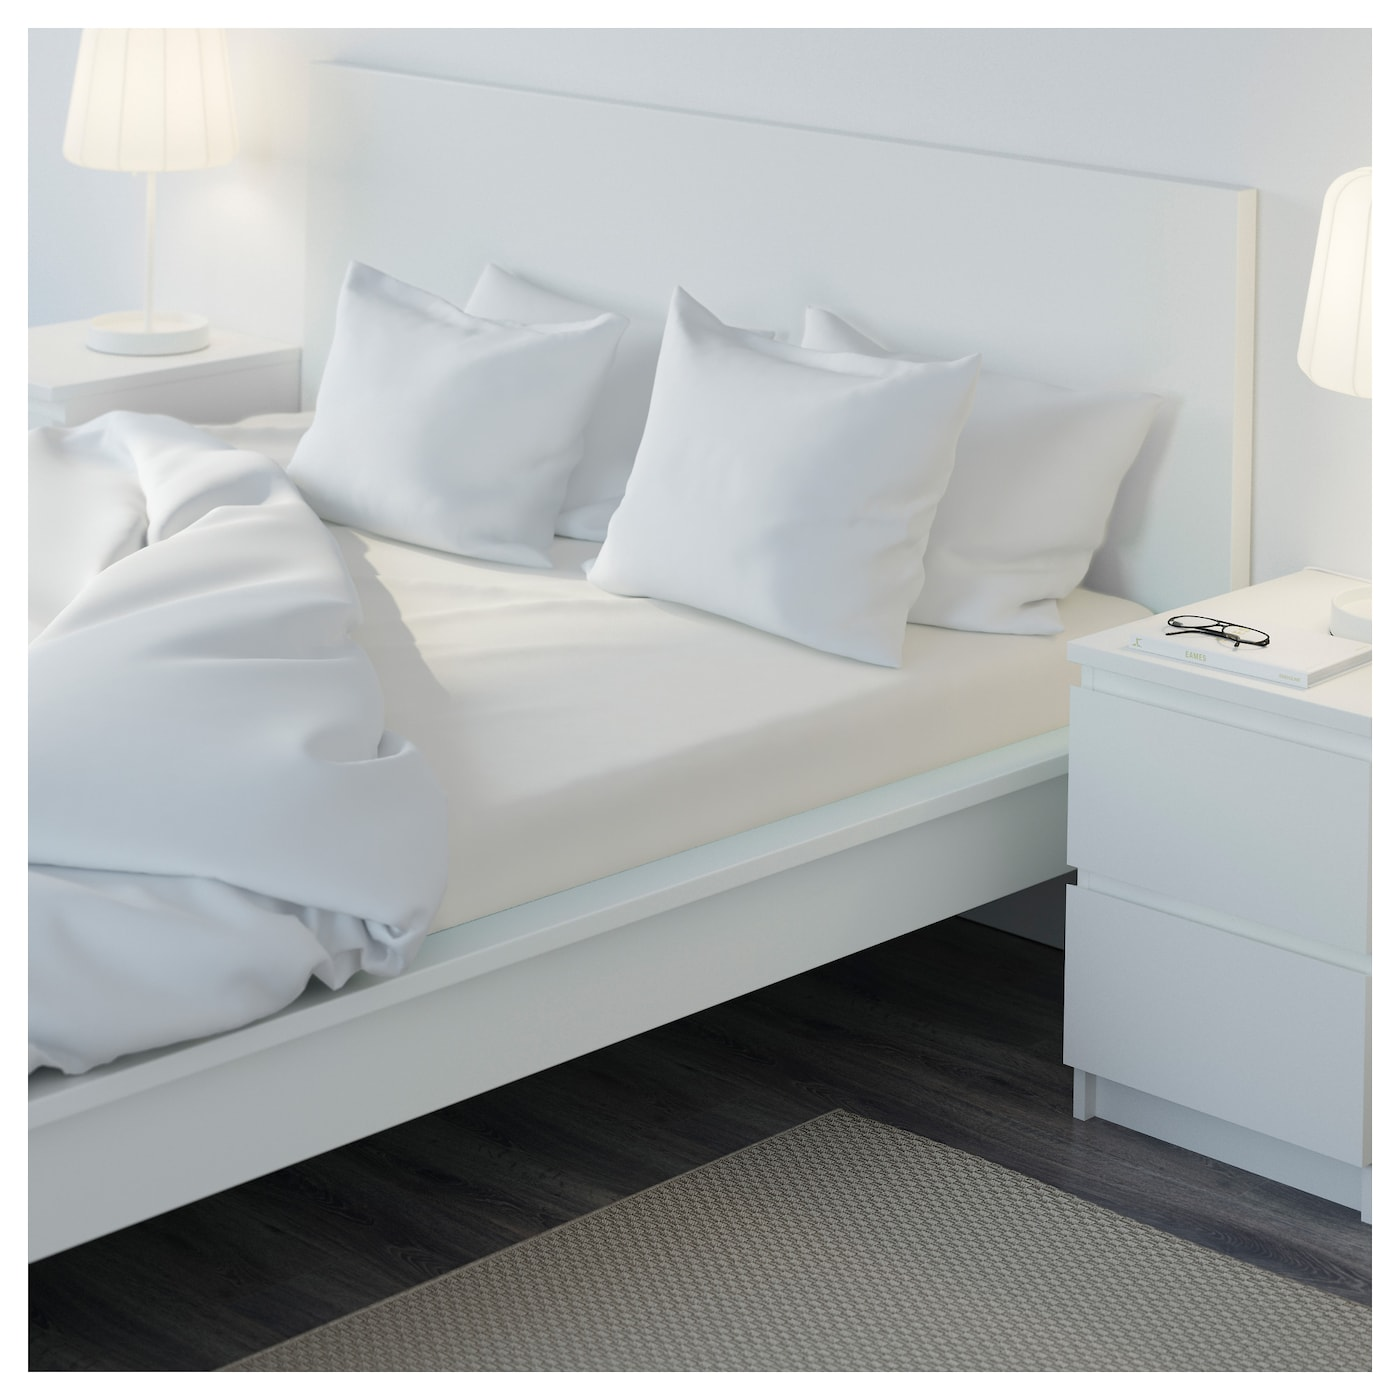 s mntuta drap housse blanc 140 x 200 cm ikea. Black Bedroom Furniture Sets. Home Design Ideas